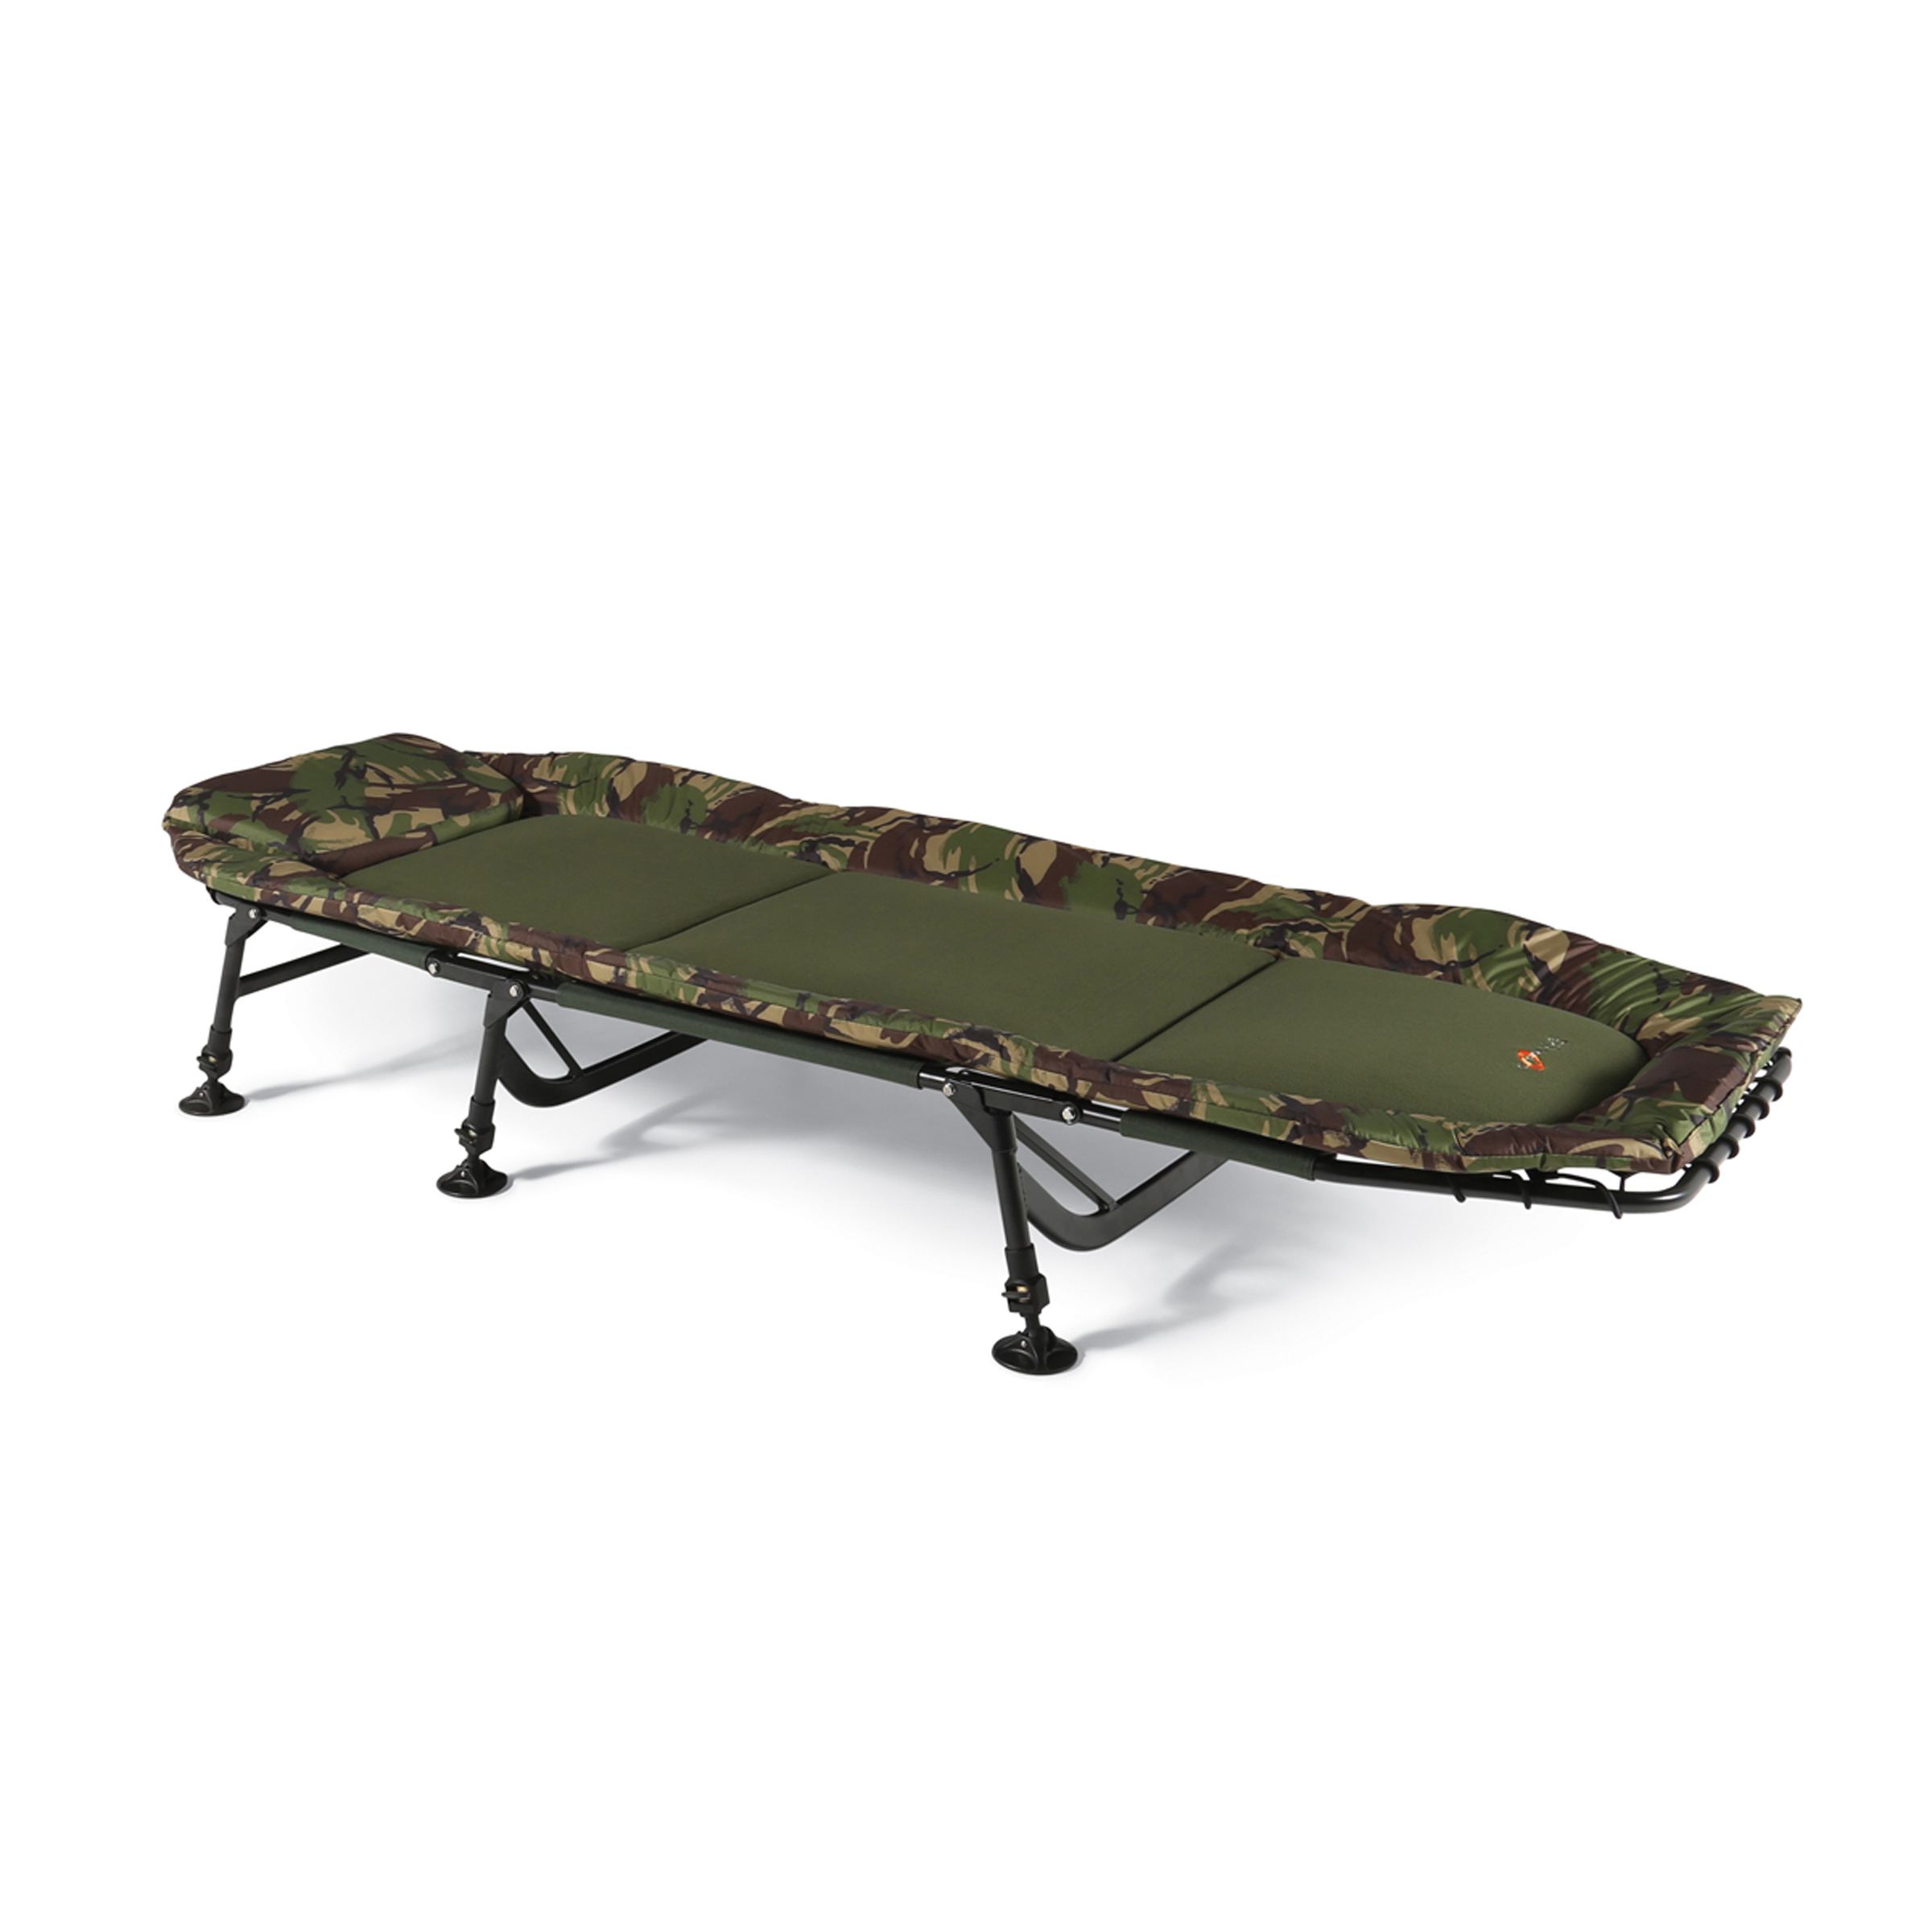 fishing chair base covers ipswich cyprinus carp compact bedchair bed and free